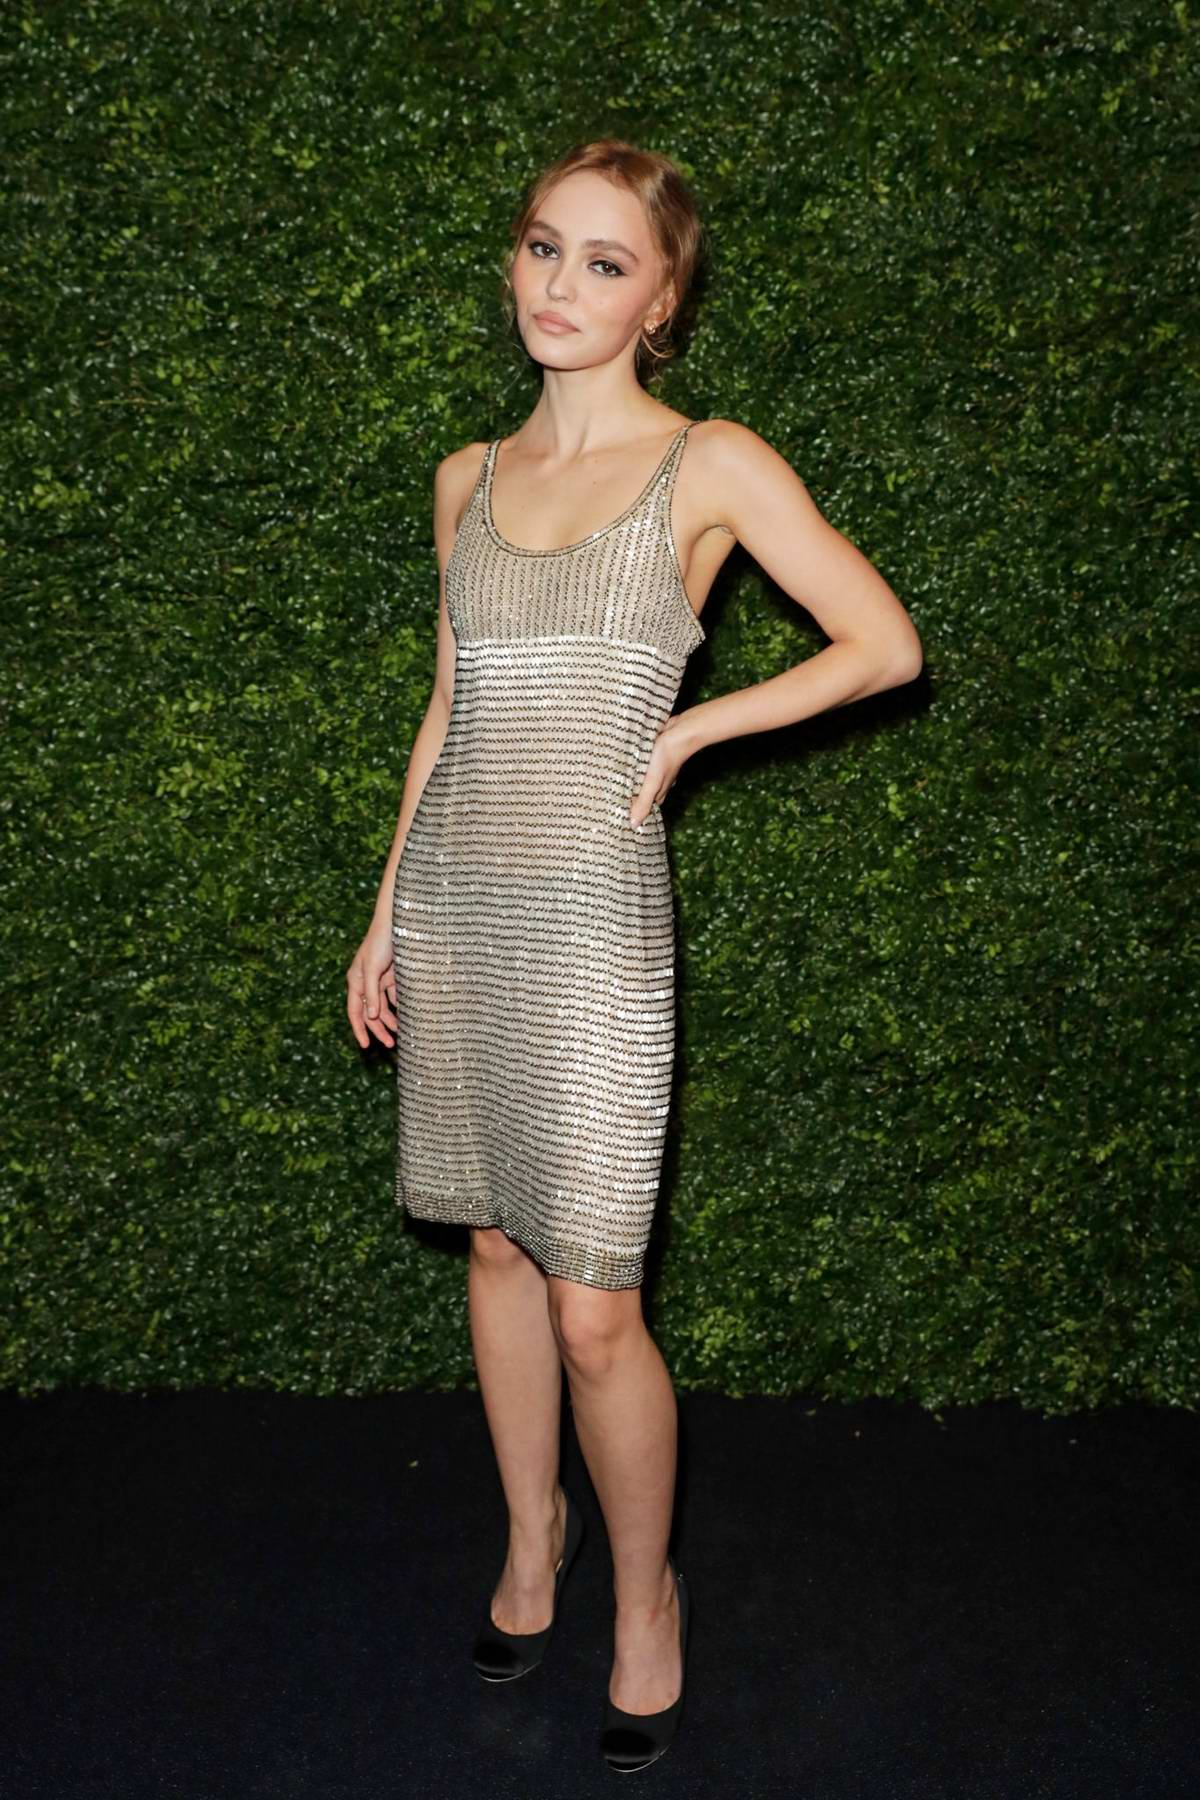 Lily-Rose Depp attends Charles Finch and Chanel Pre-BAFTA Party in London, UK